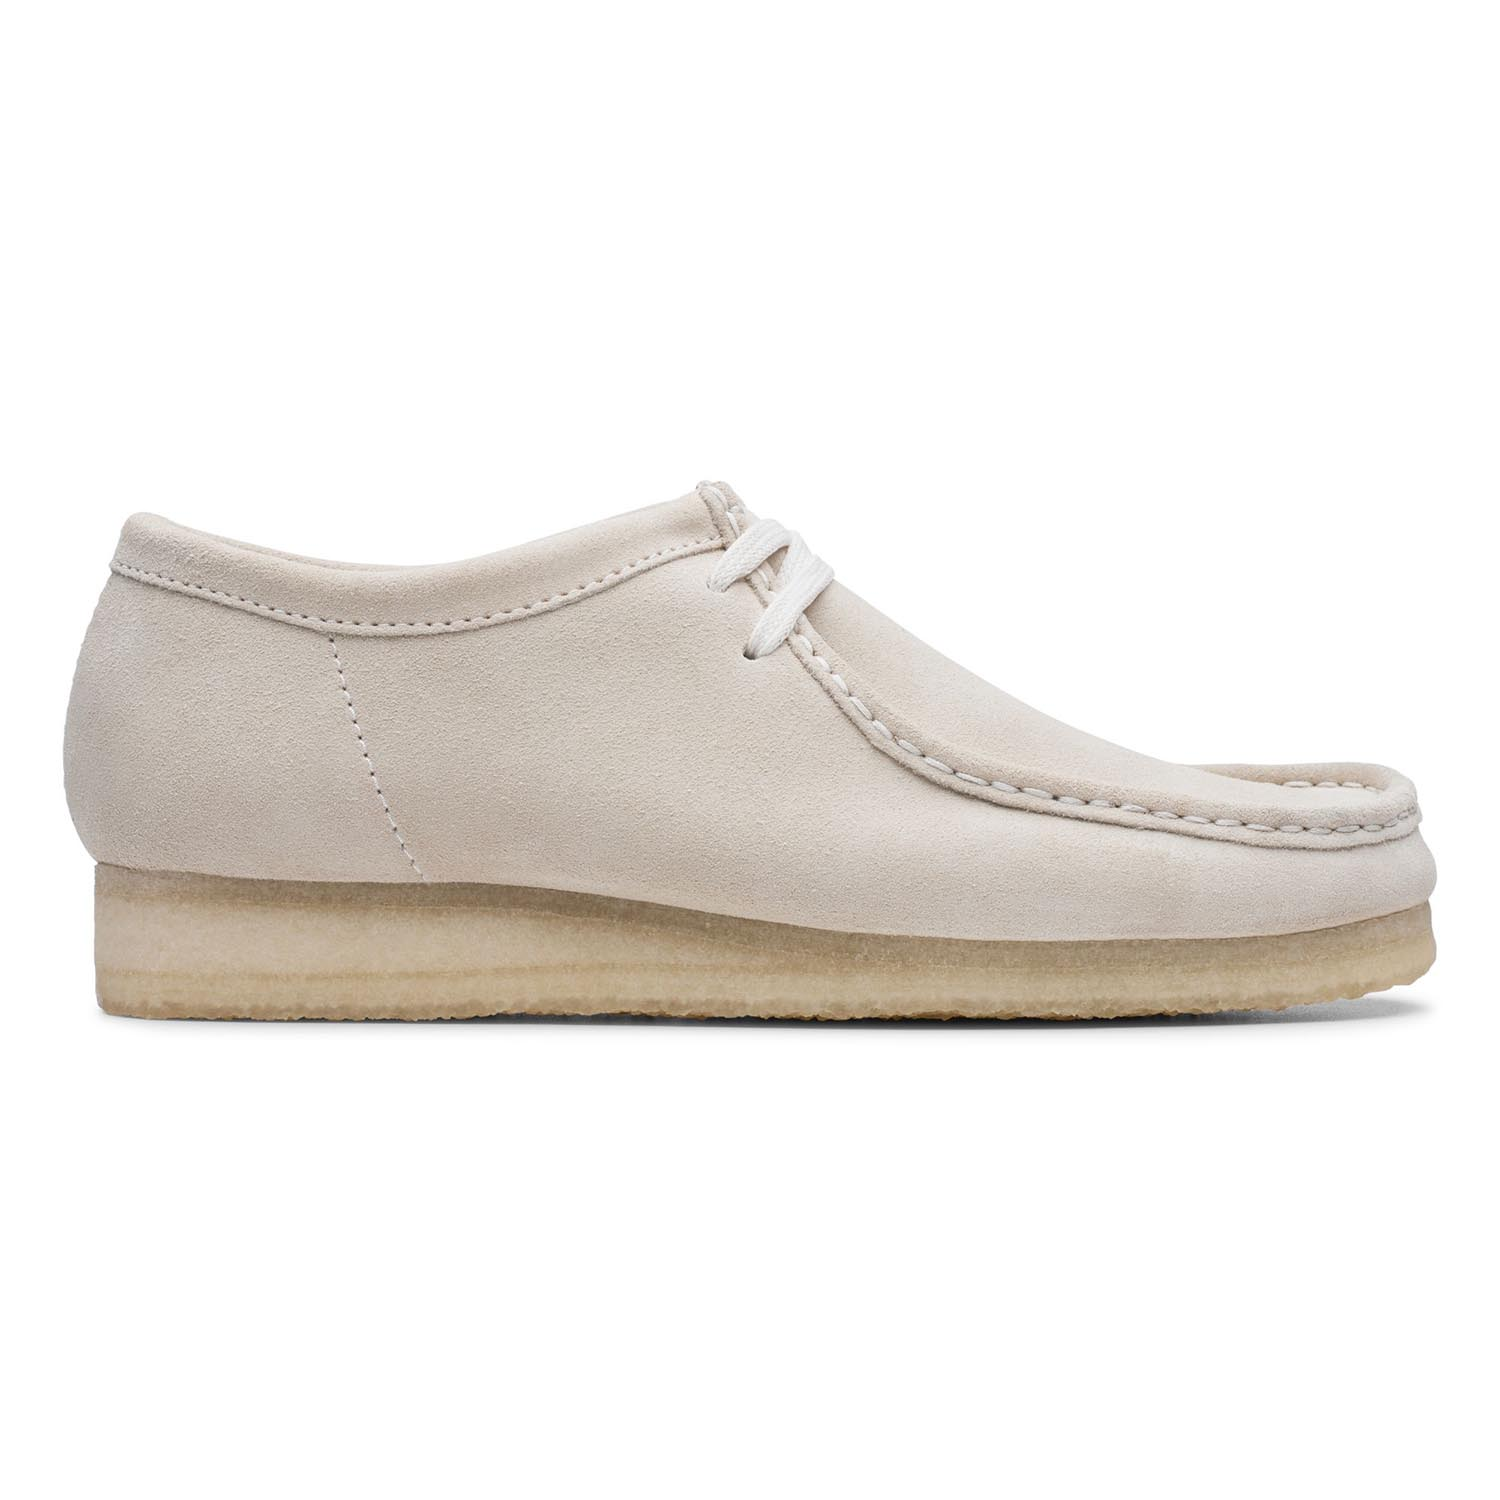 Clarks Wallabee Mens Shoes Off White